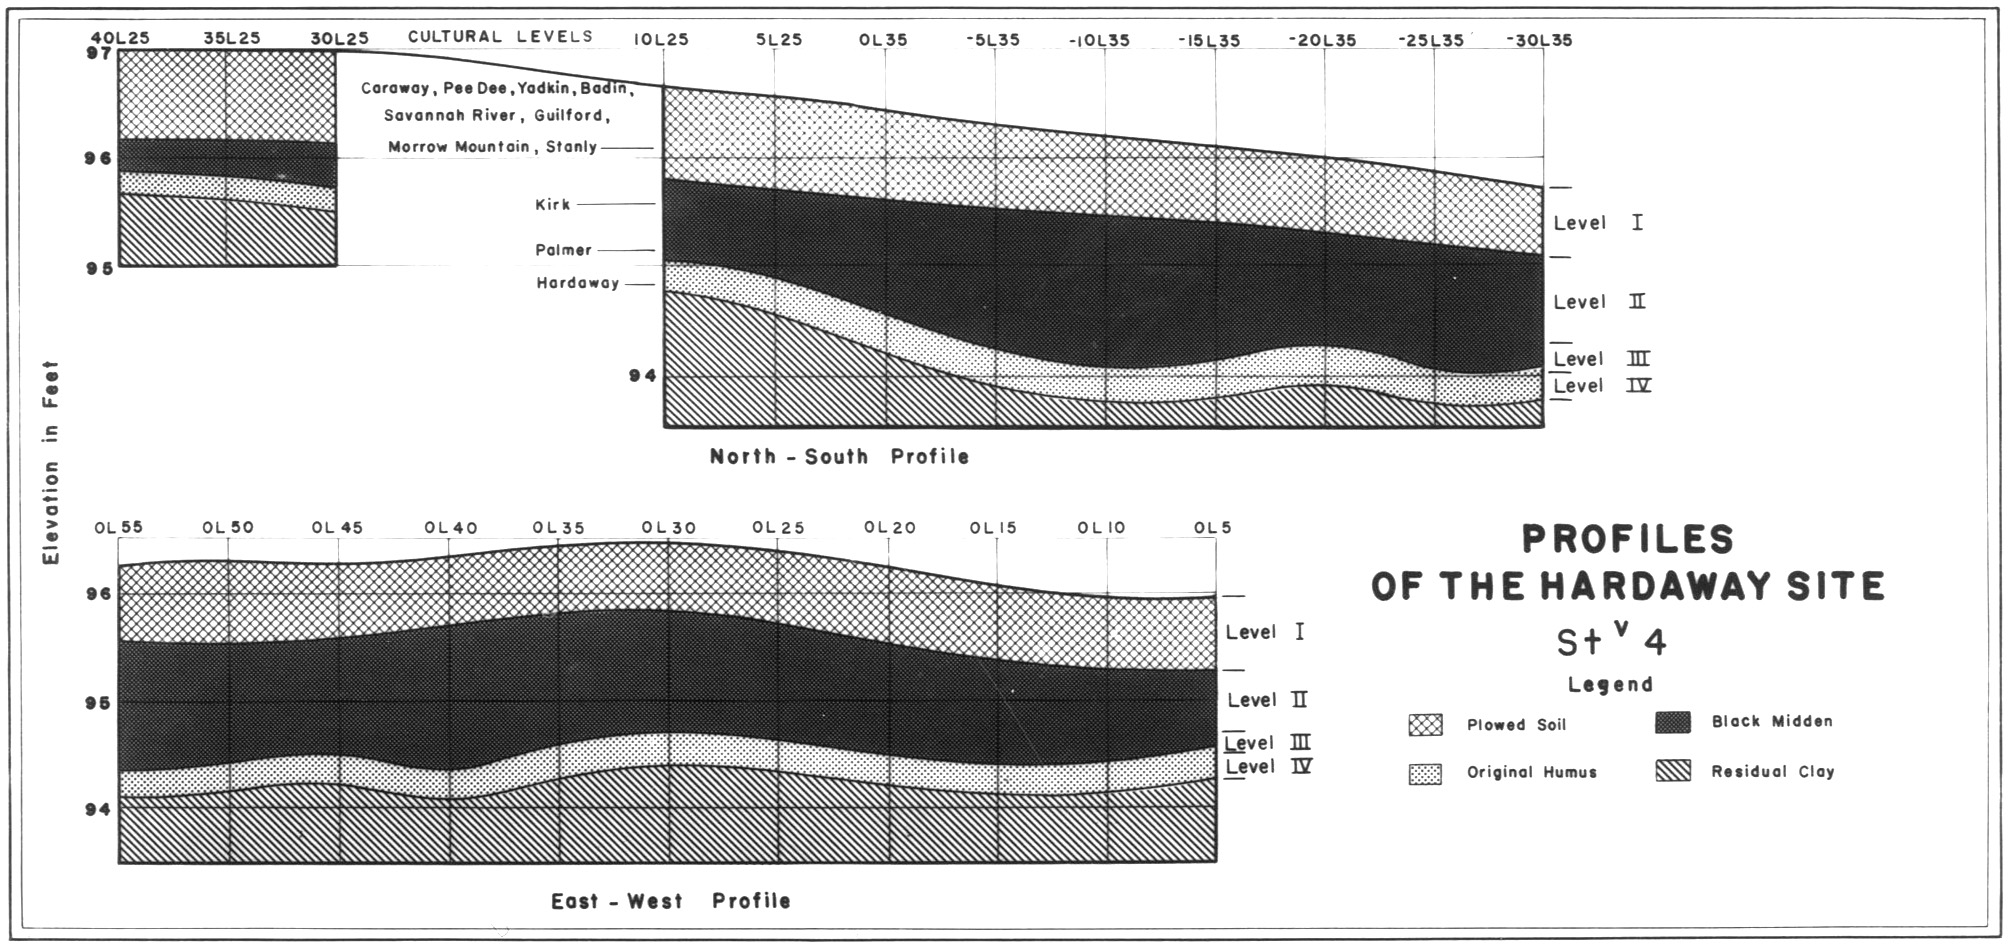 Profiles of the soil layers at Hardaway, from Formative Cultures, Fig. 49 (1964)